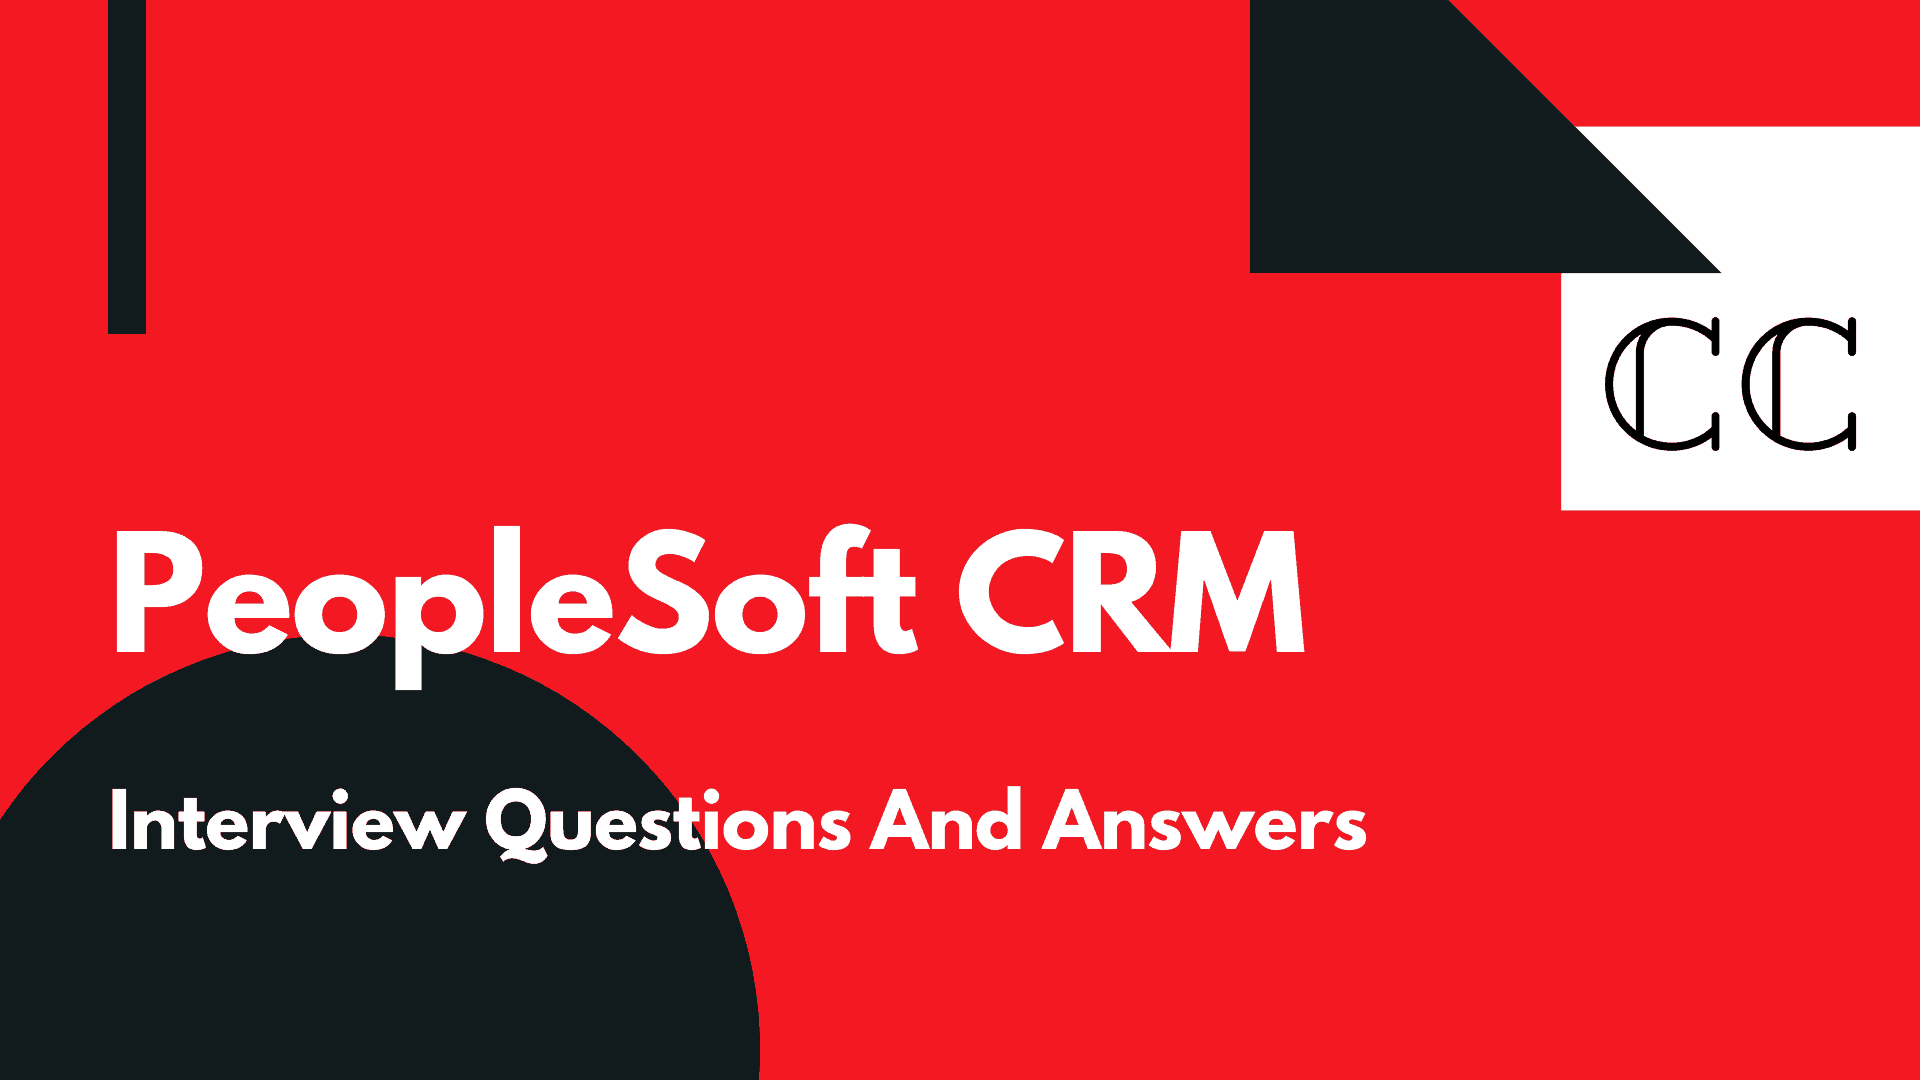 PeopleSoft CRM Interview Questions